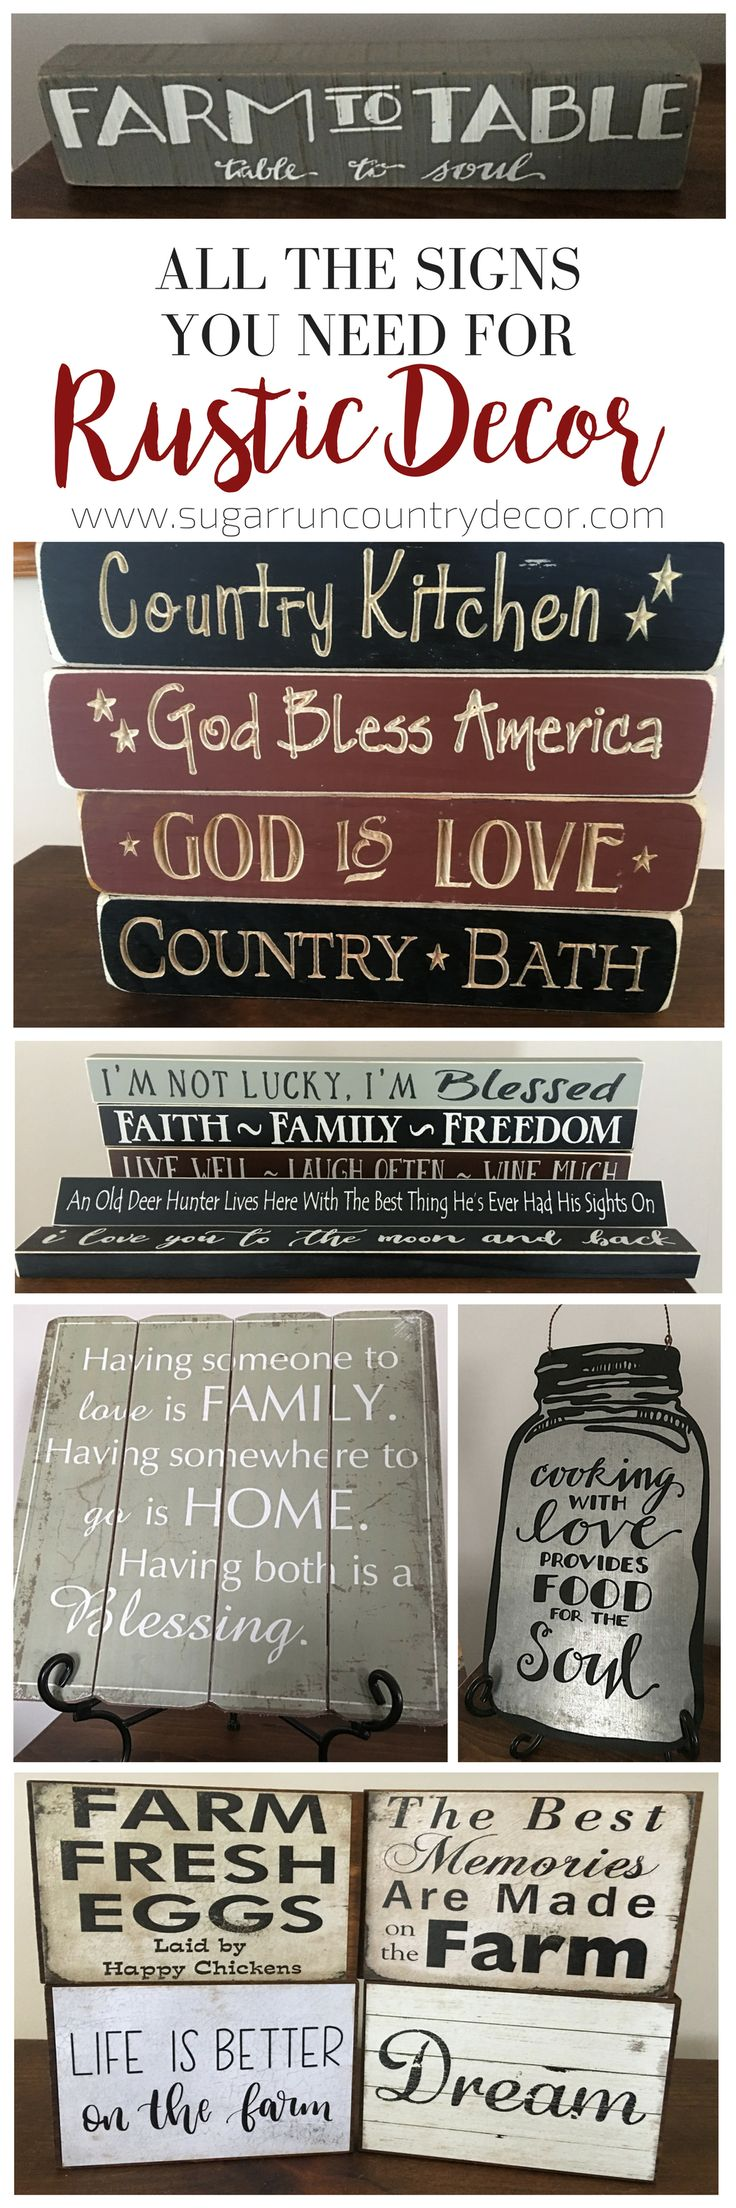 Shop All Rustic, Wooden Signs Now! Perfect for Rustic Home Decor Of All Themes!